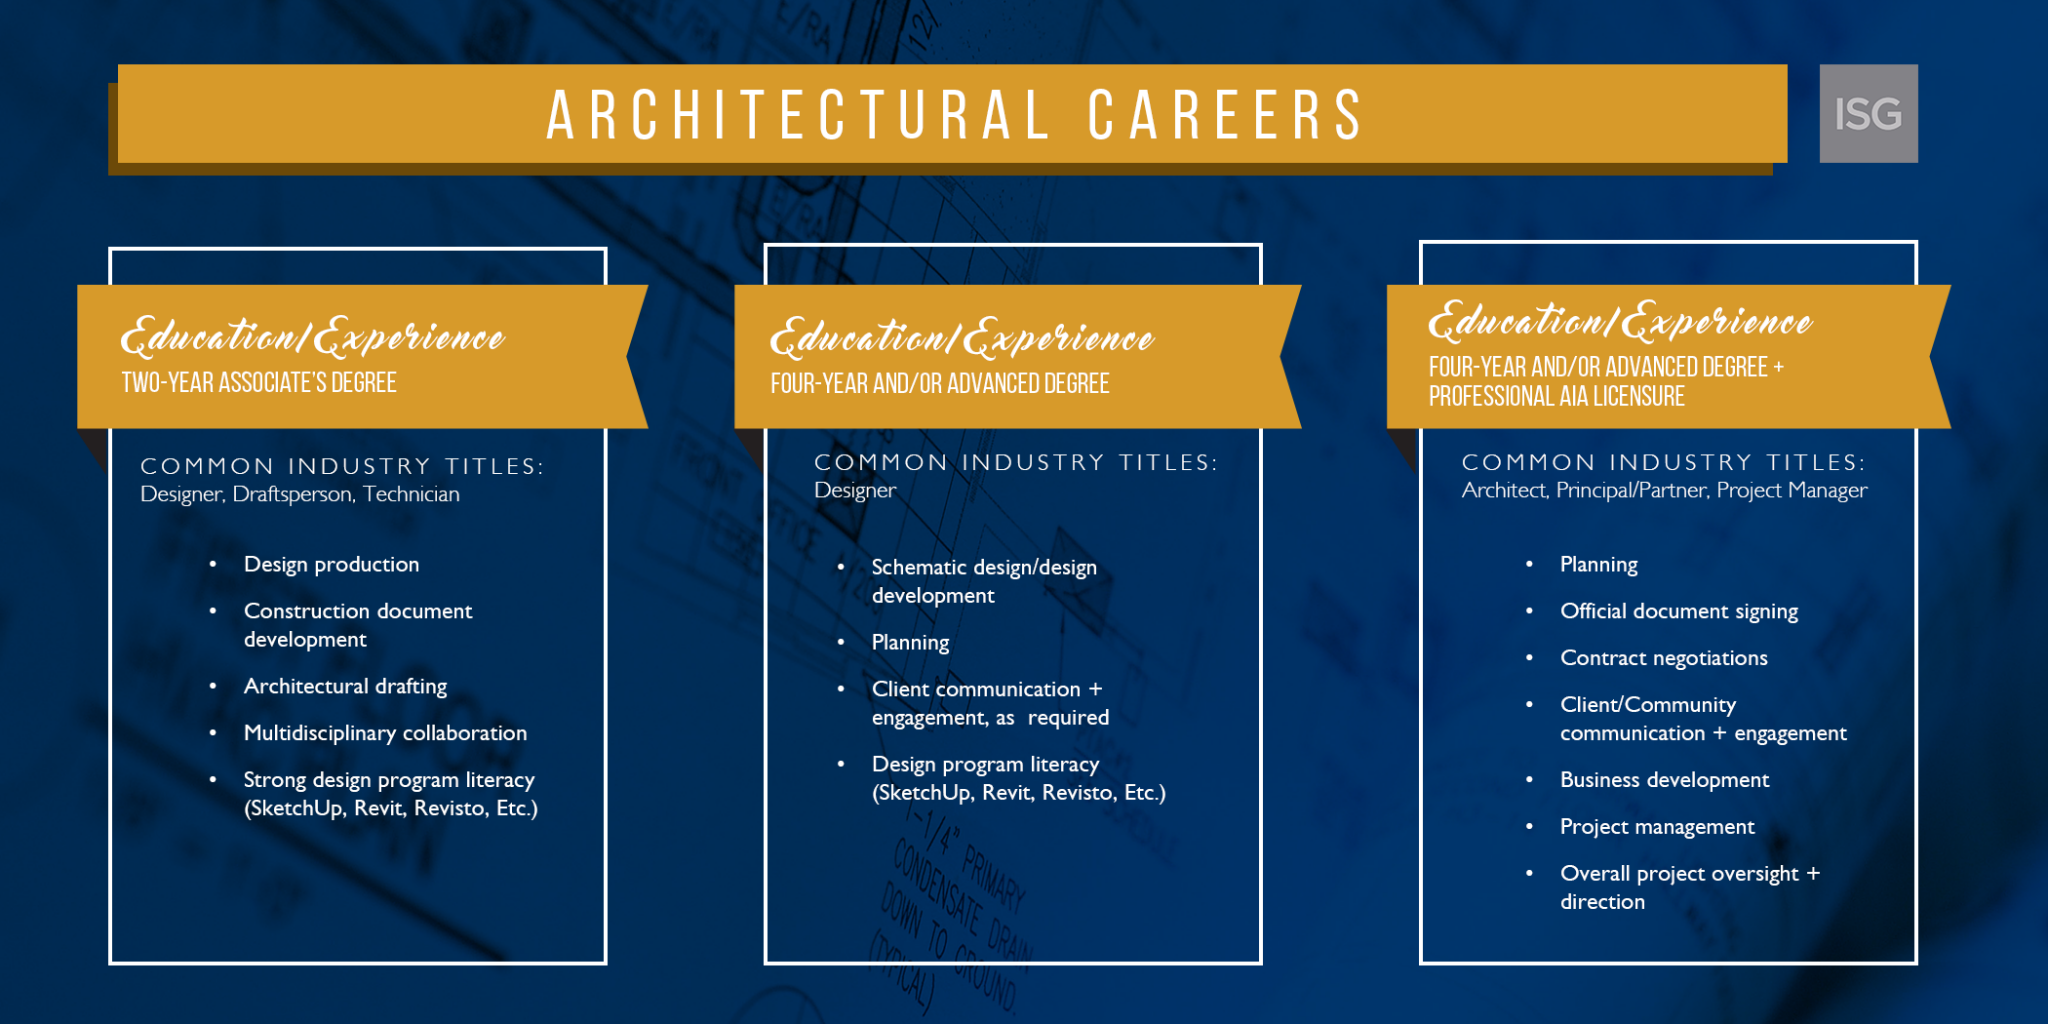 architecture-careers-infographic-2